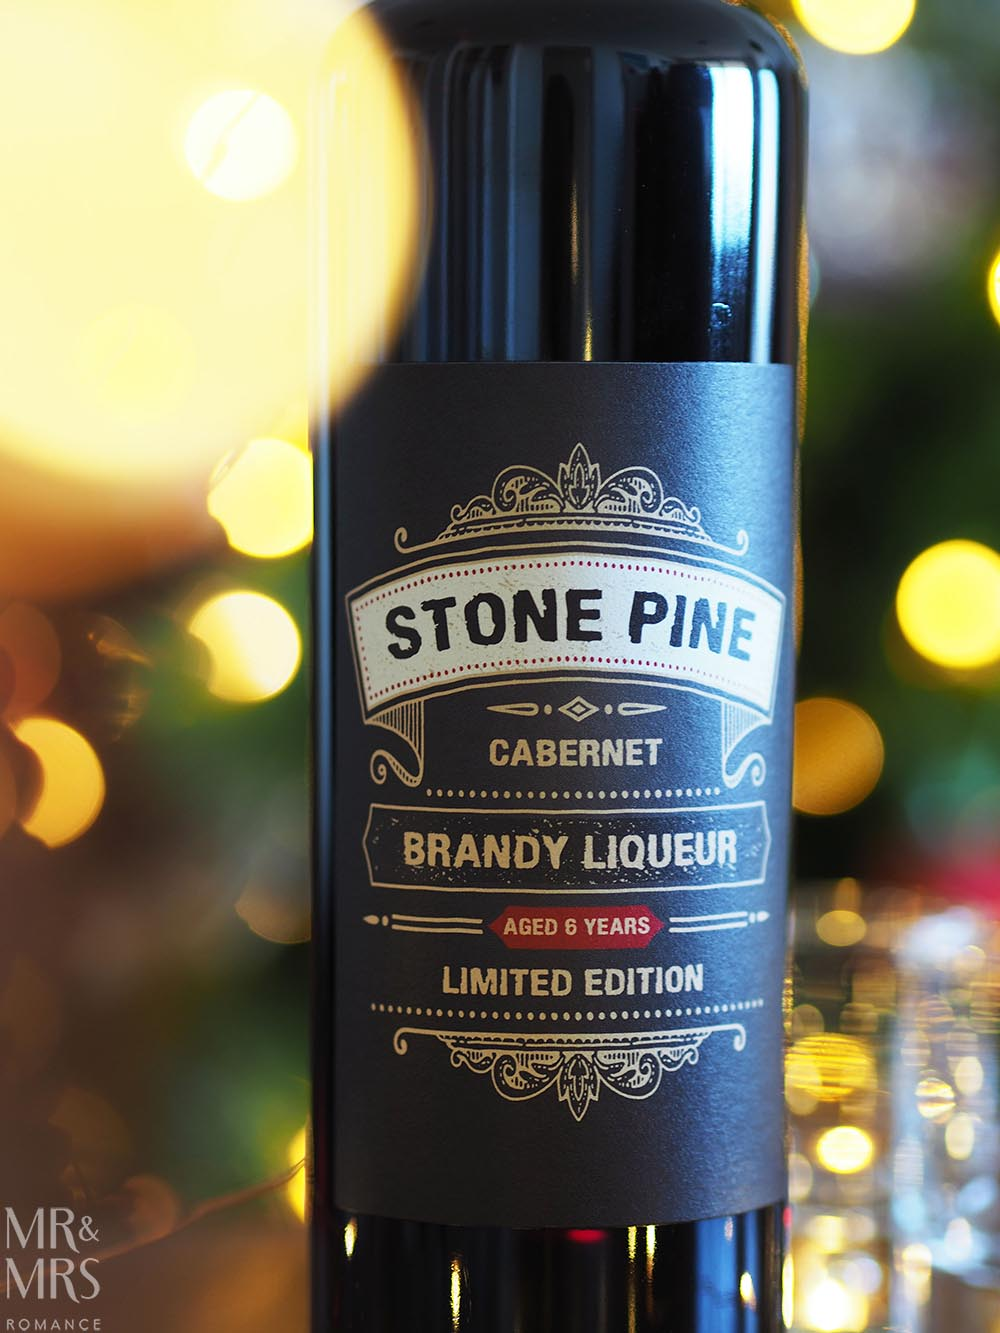 Last-minute Christmas gifts - Stone Pine Brandy Liqueur